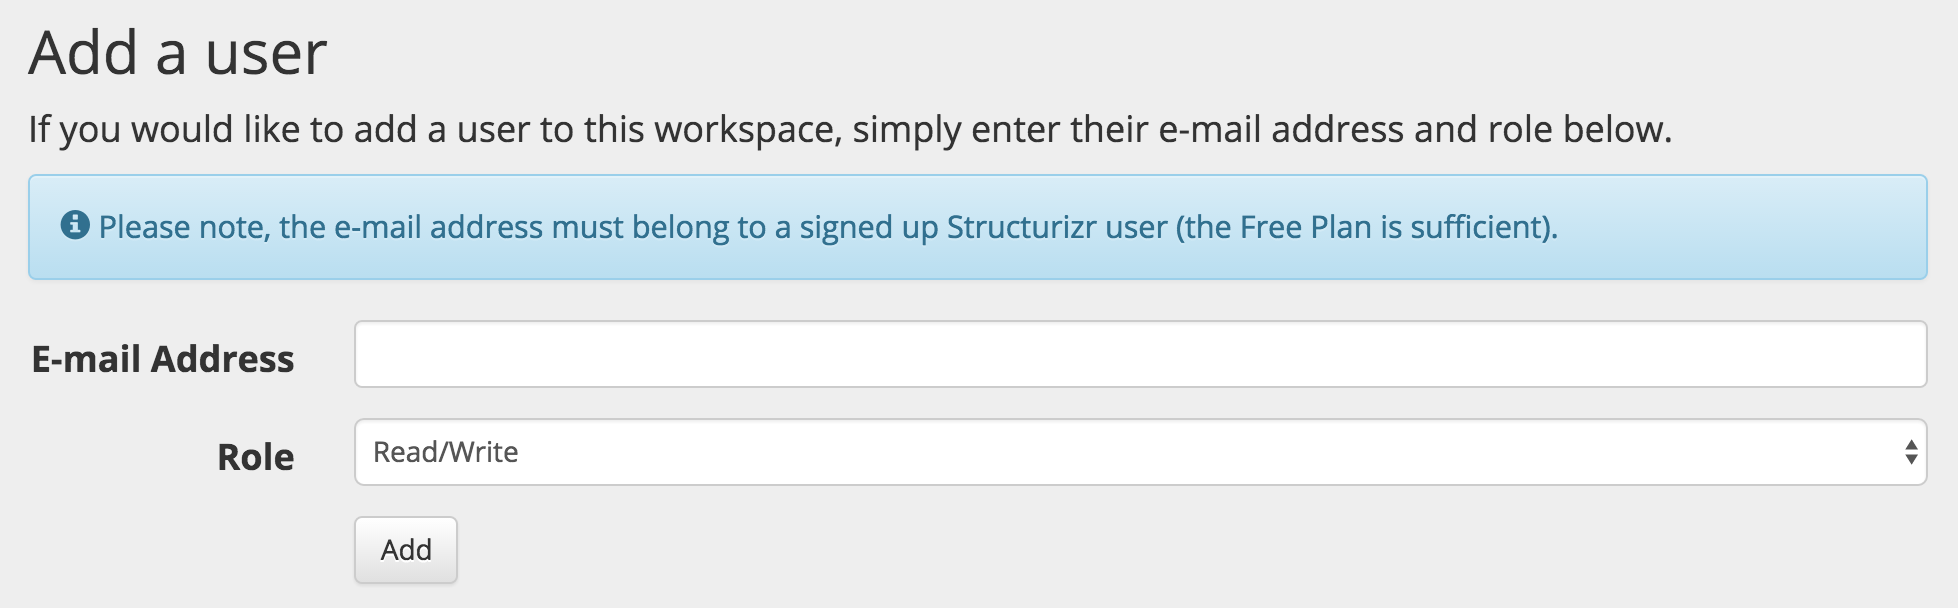 Adding a user to a workspace